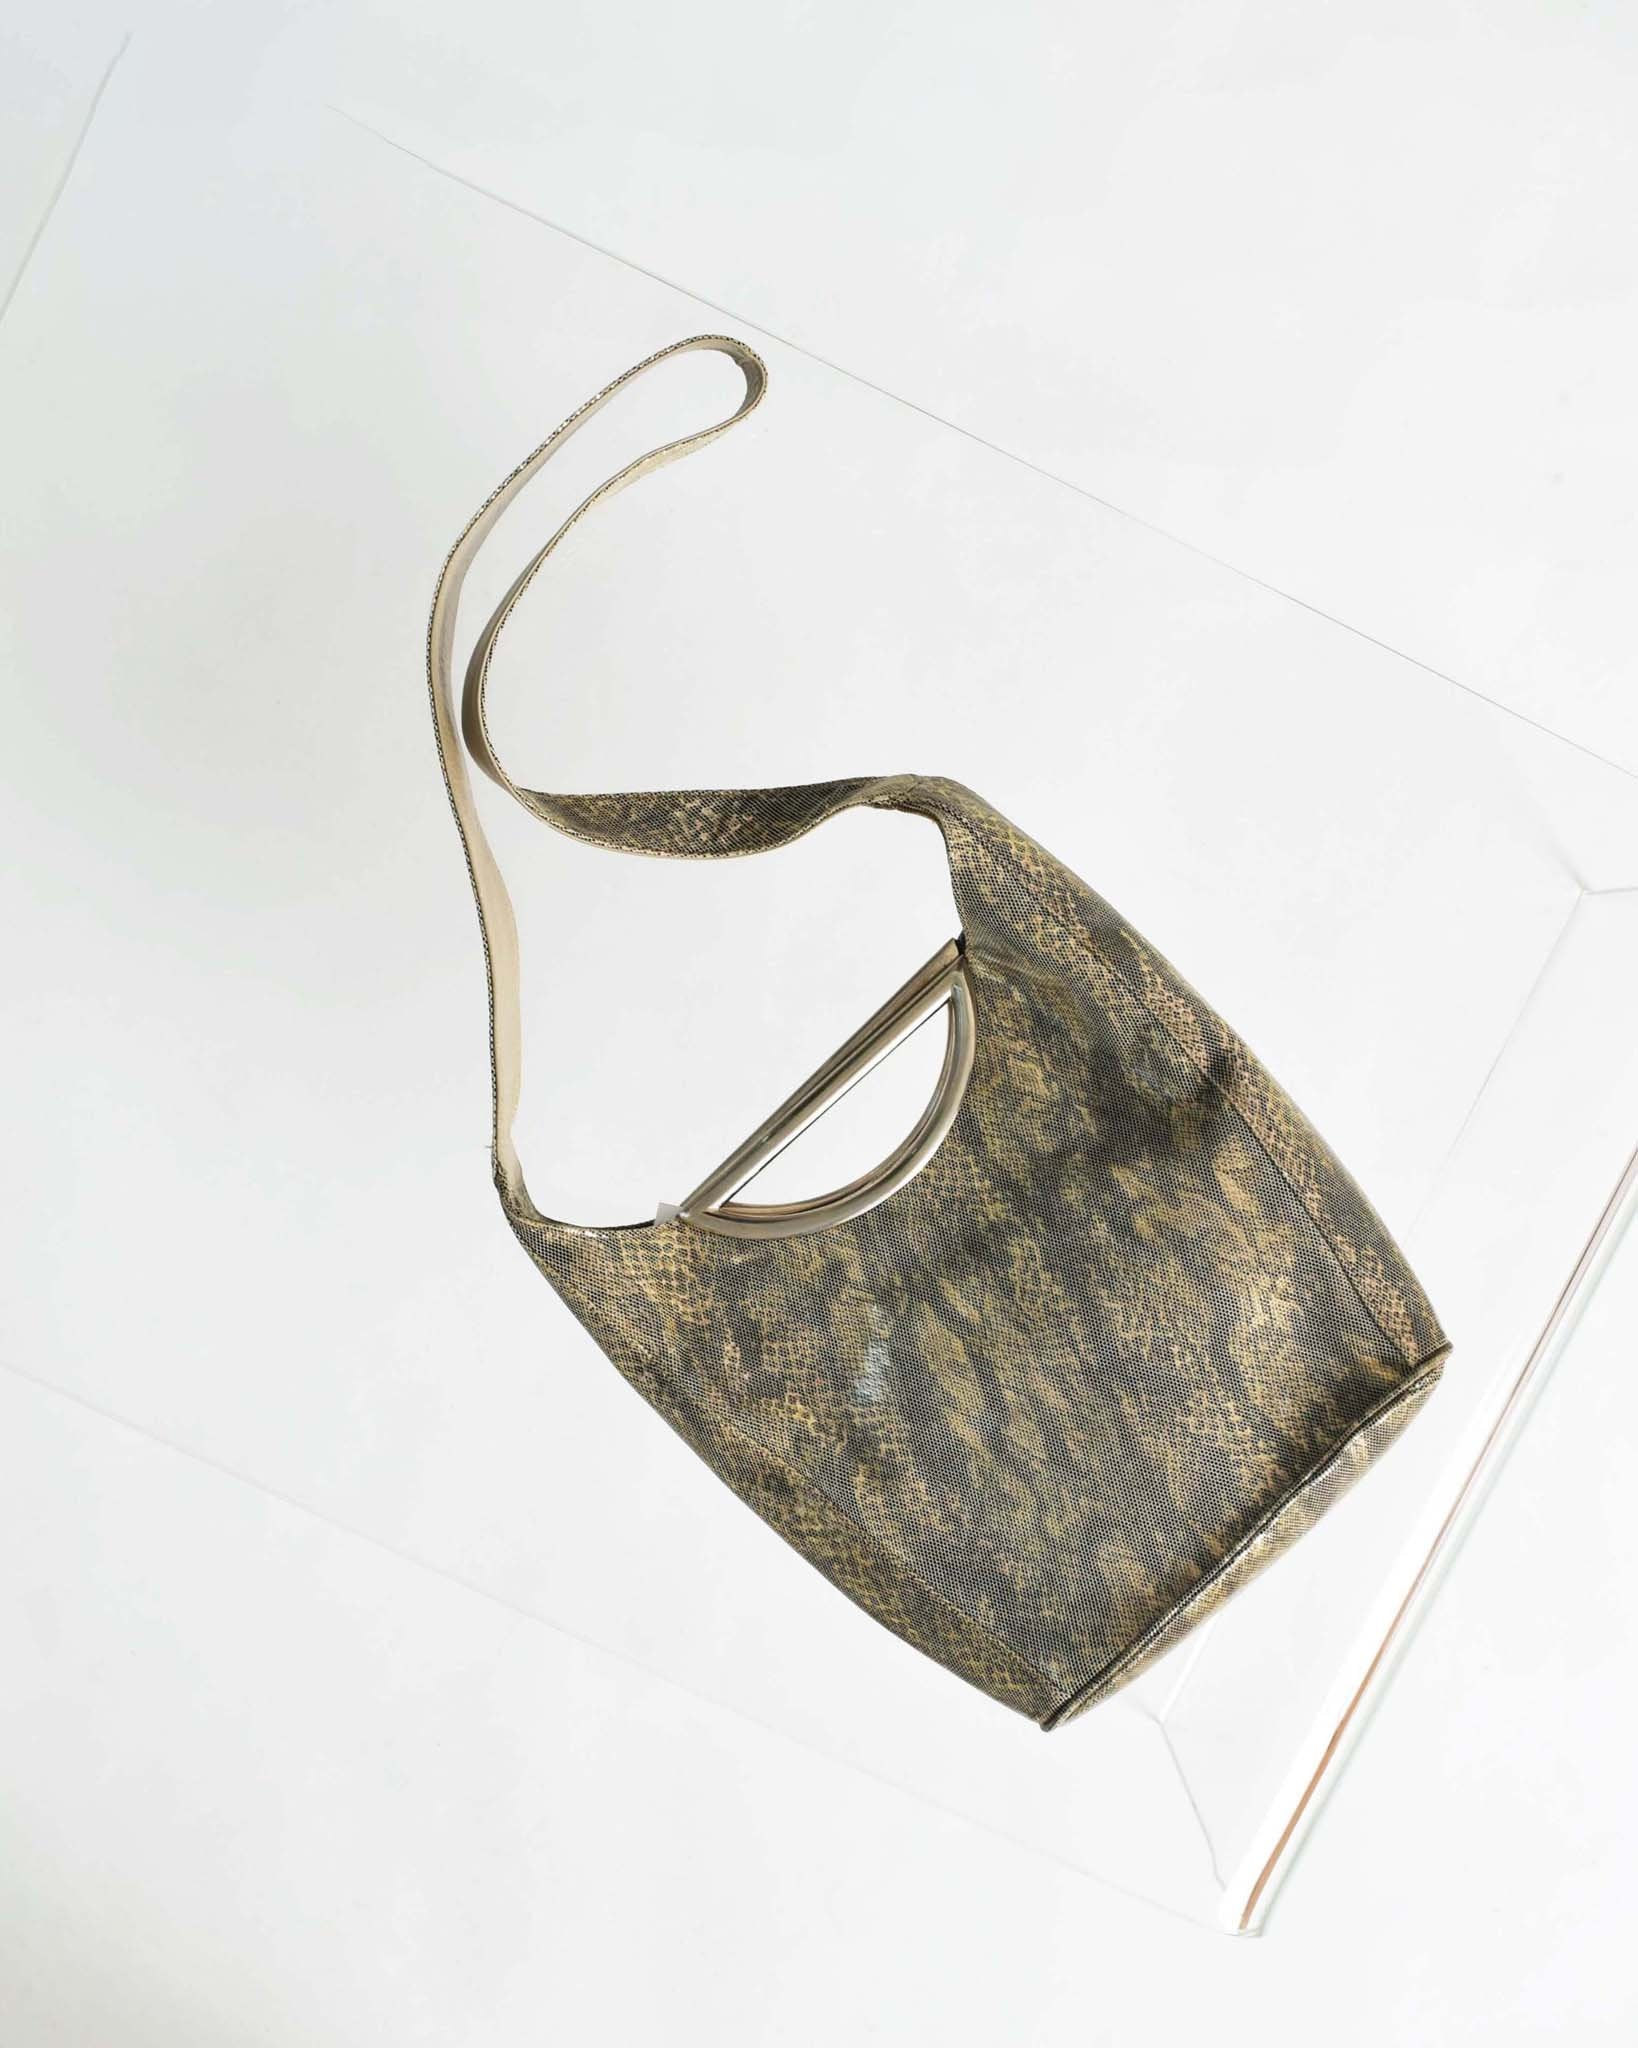 Vintage Metallic Animal Print Bag